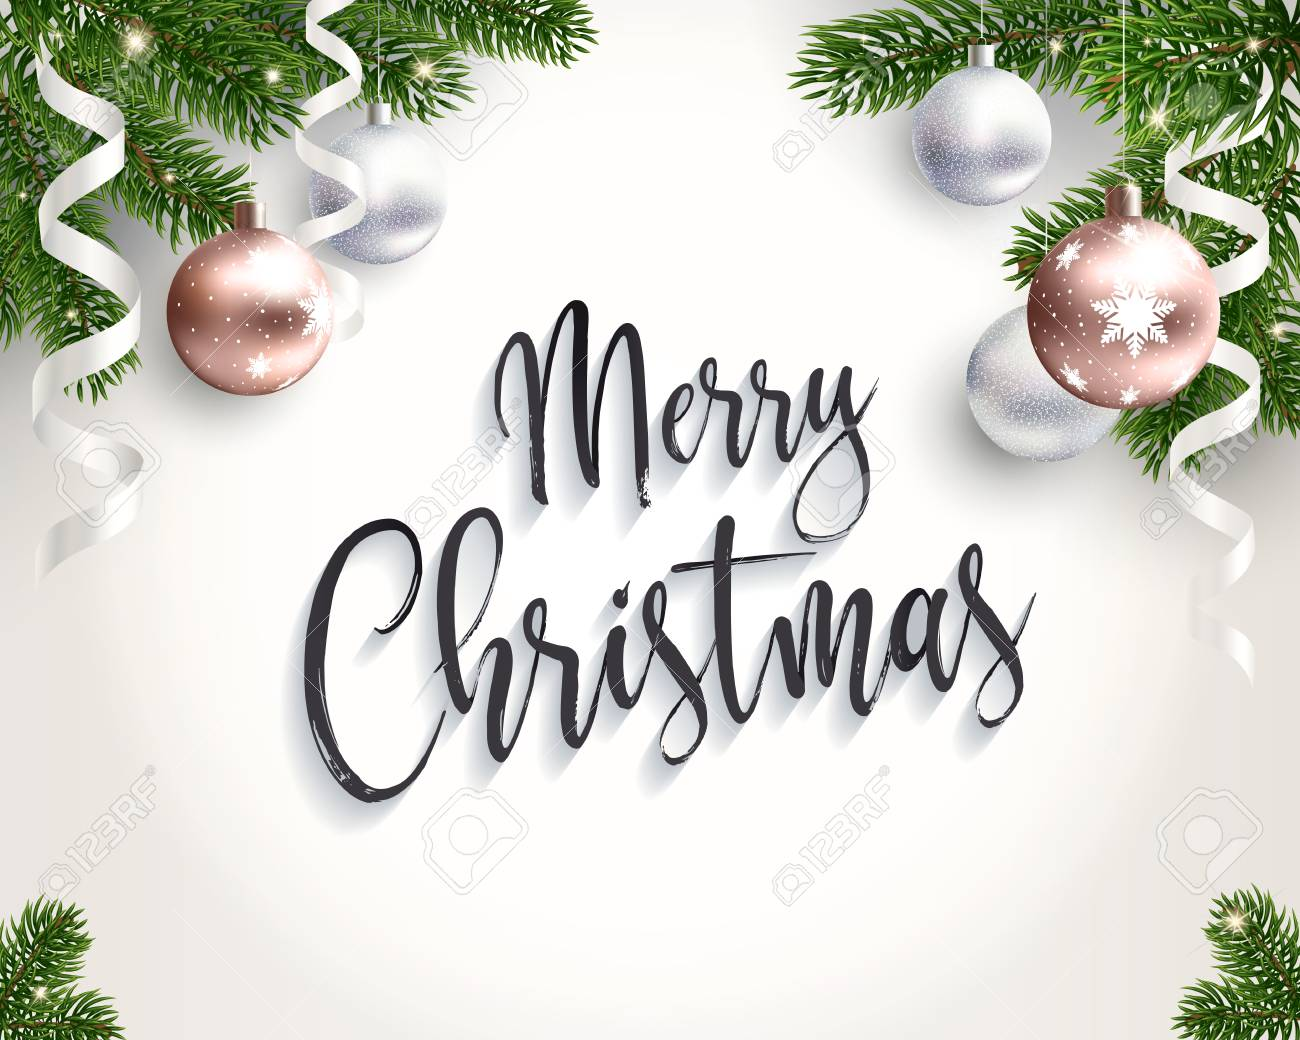 Merry Christmas Background.Merry Christmas Background For Congratulations Realistic Illustration